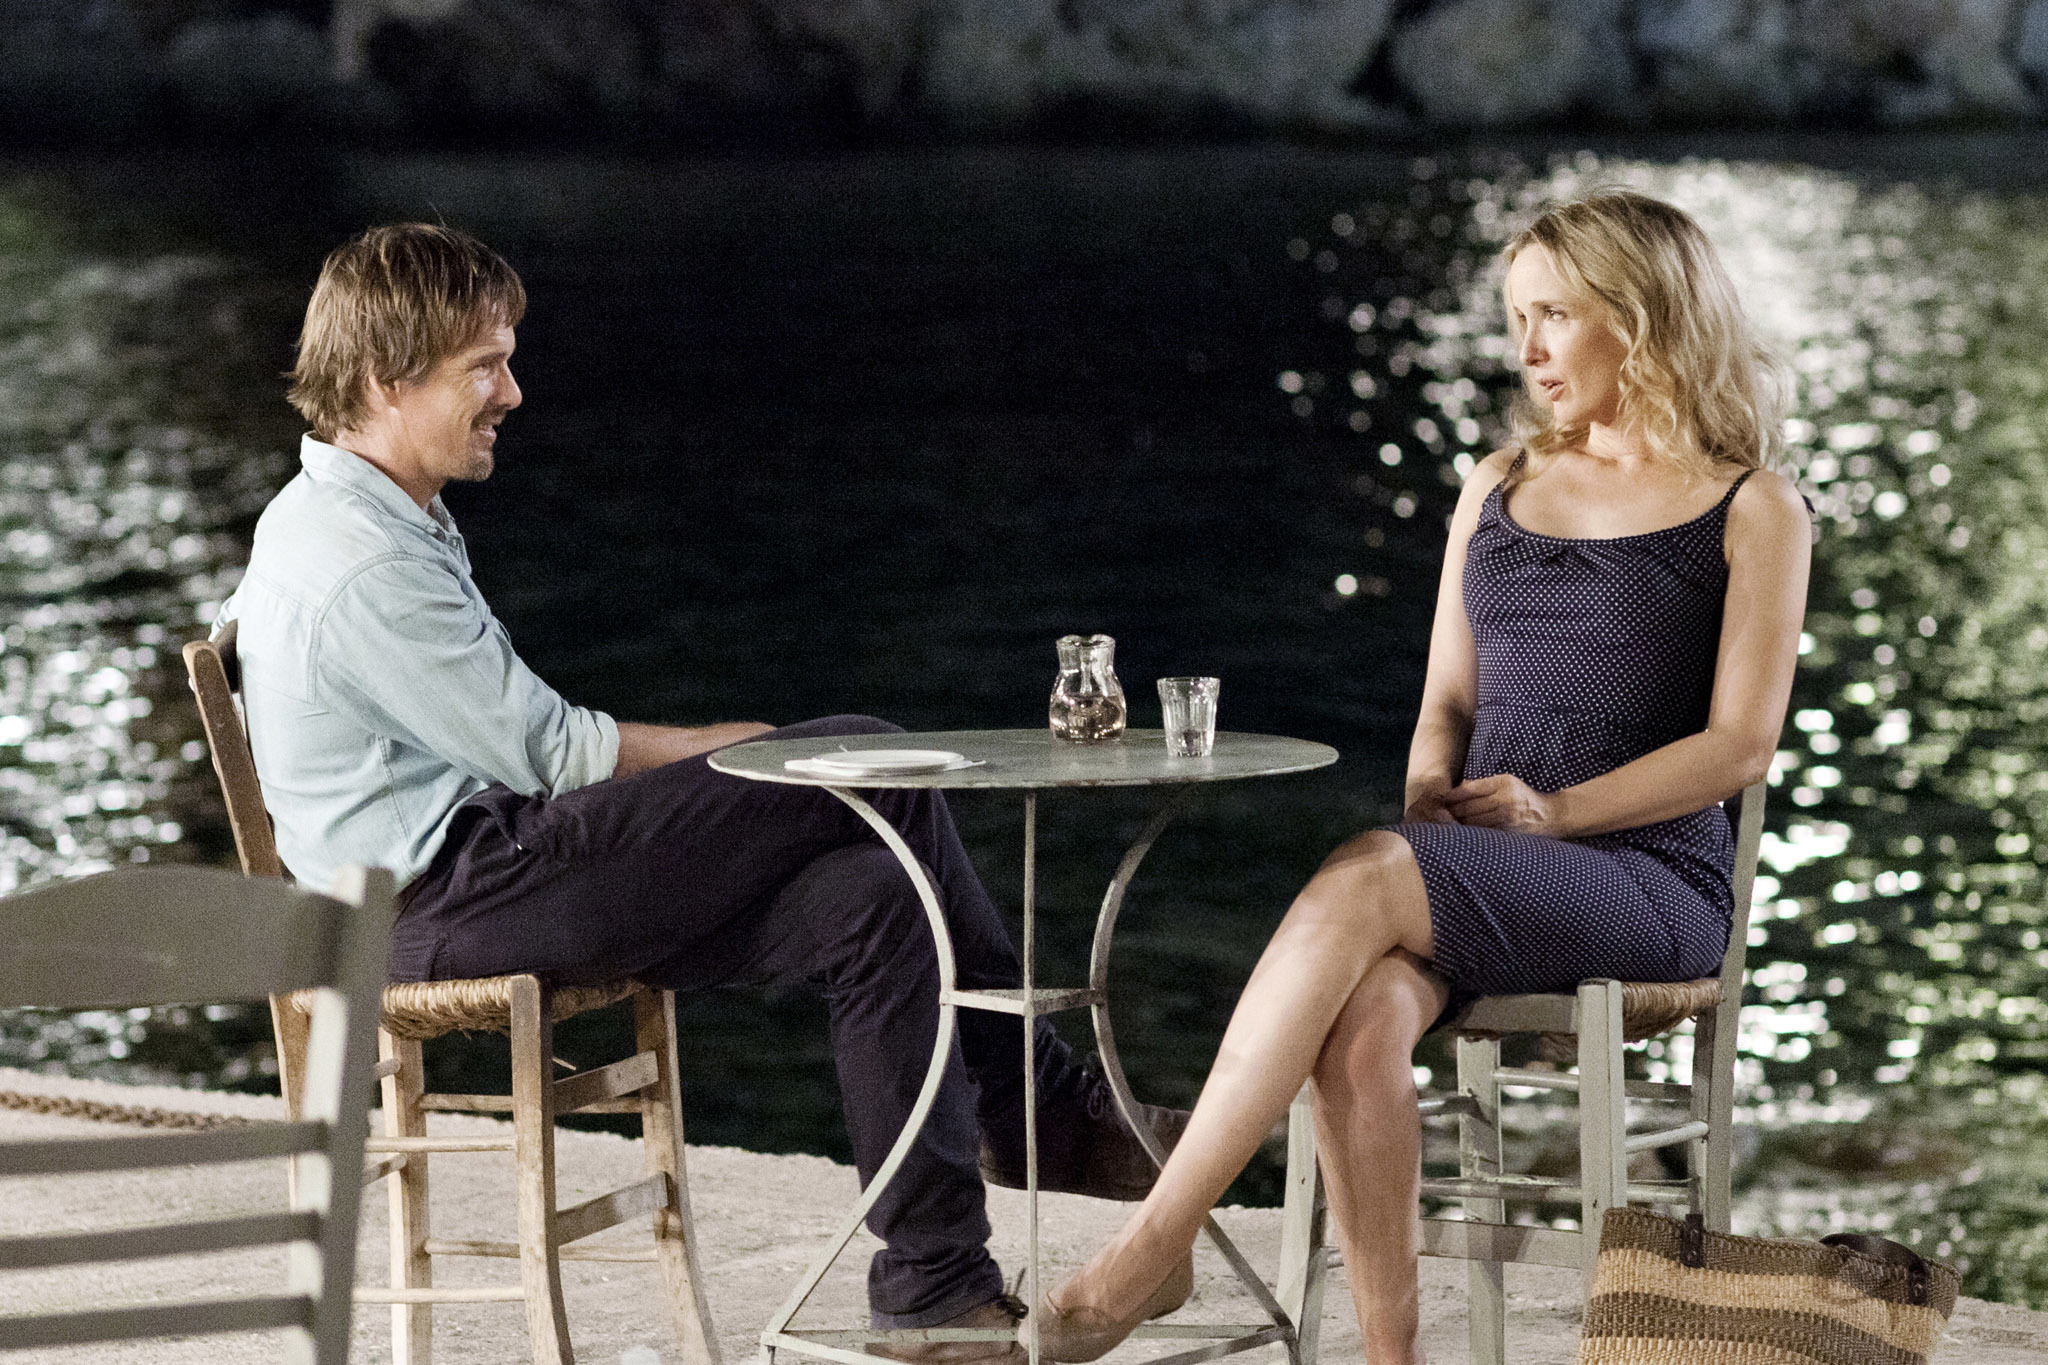 beforemidnight2 texnes plus